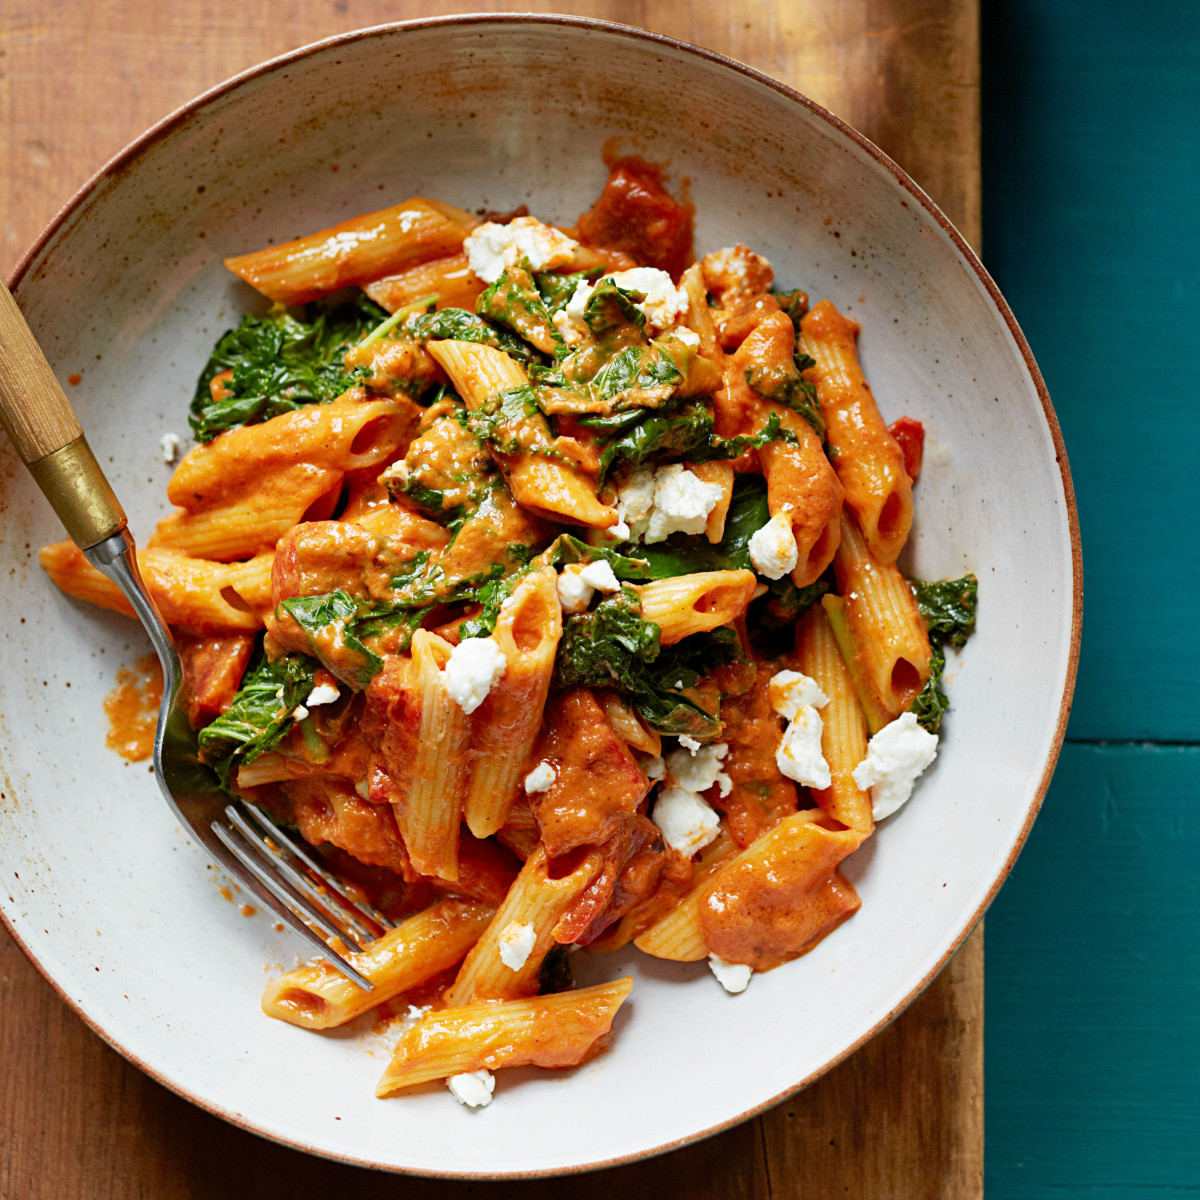 Roasted Red Pepper Goatcheese Penne